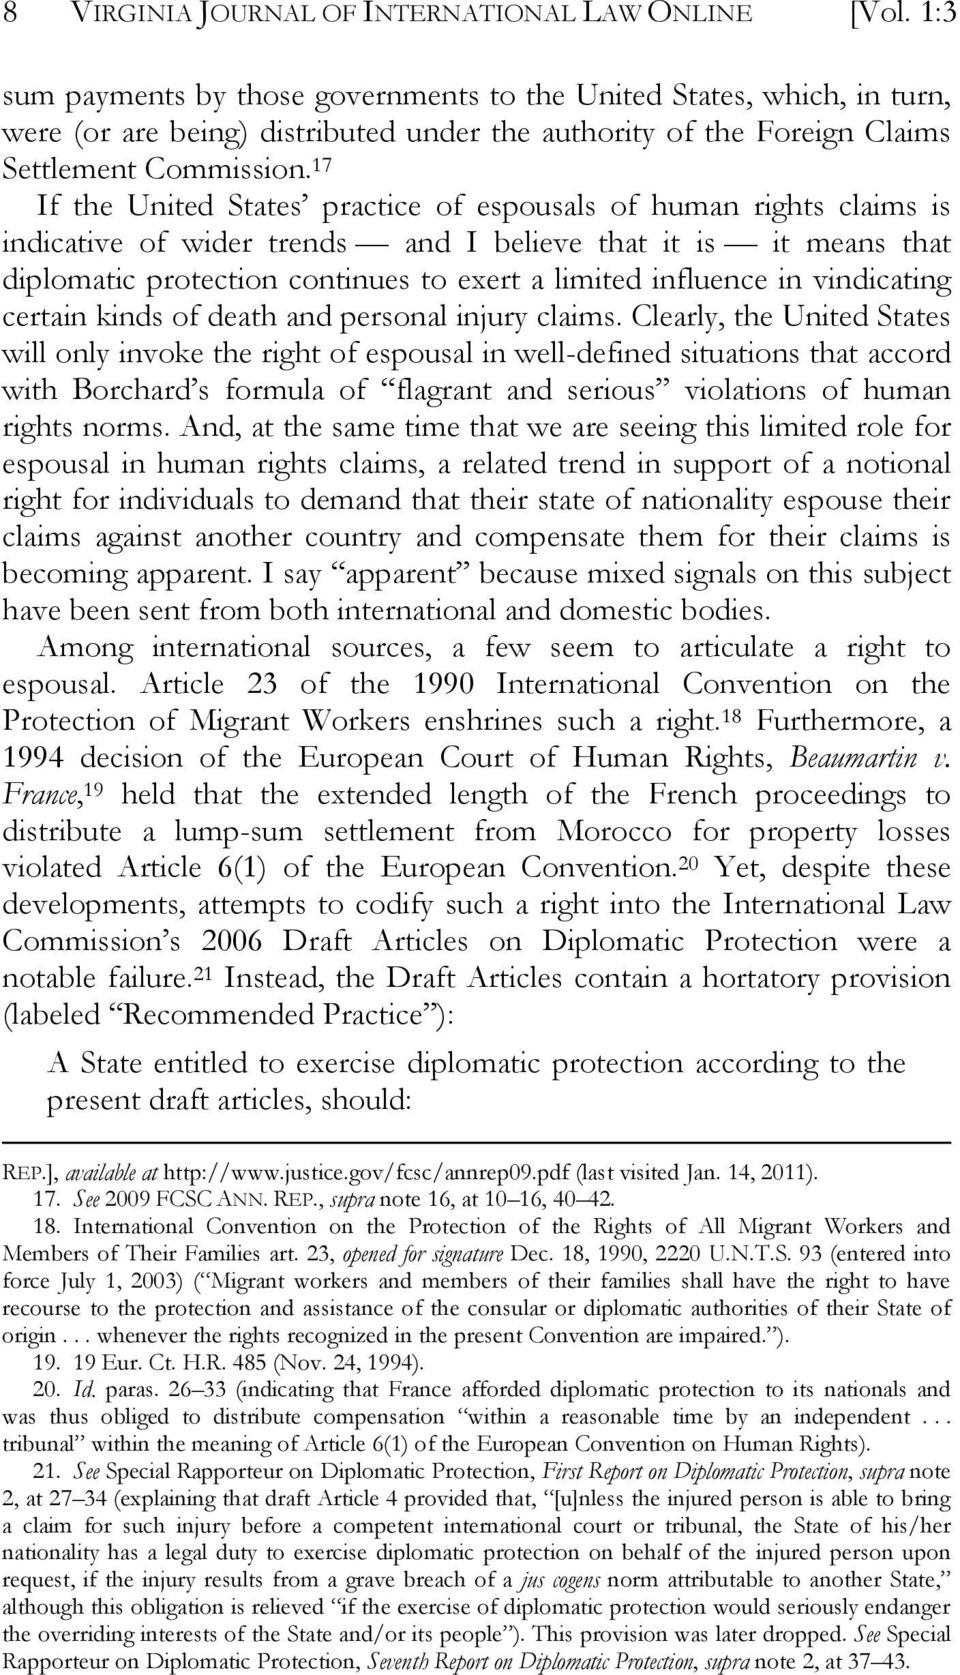 17 If the United States practice of espousals of human rights claims is indicative of wider trends and I believe that it is it means that diplomatic protection continues to exert a limited influence